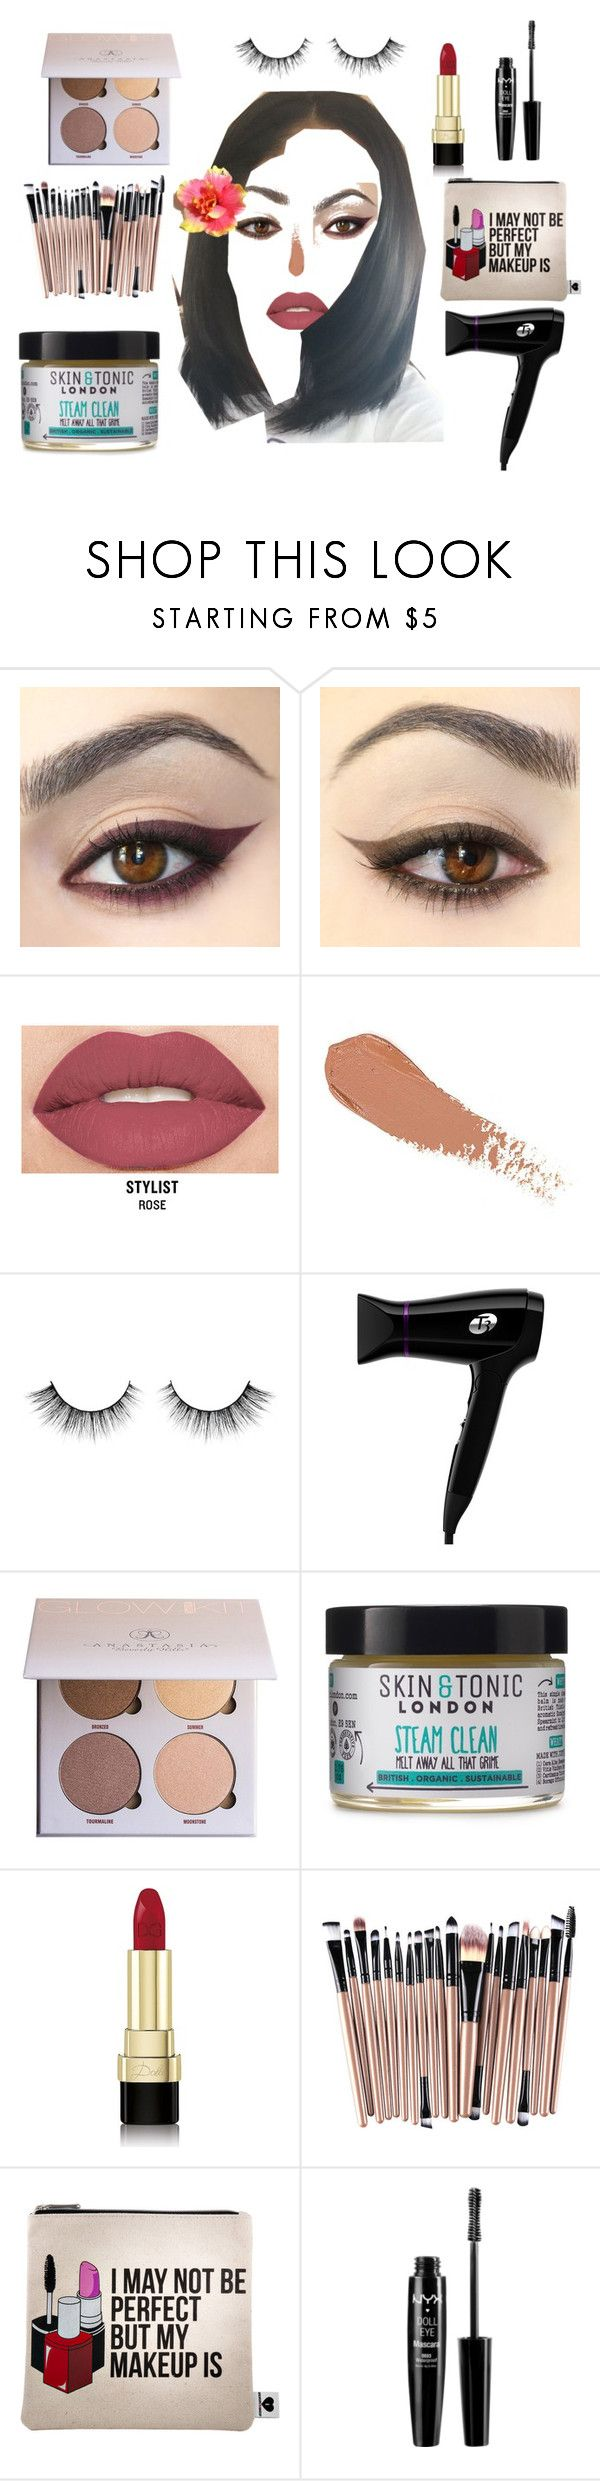 """DIY Beauty"" by shirley-de-gannes ❤ liked on Polyvore featuring beauty, Smashbox, T3, Anastasia Beverly Hills, Skin & Tonic, Dolce&Gabbana, Sephora Collection and NYX"